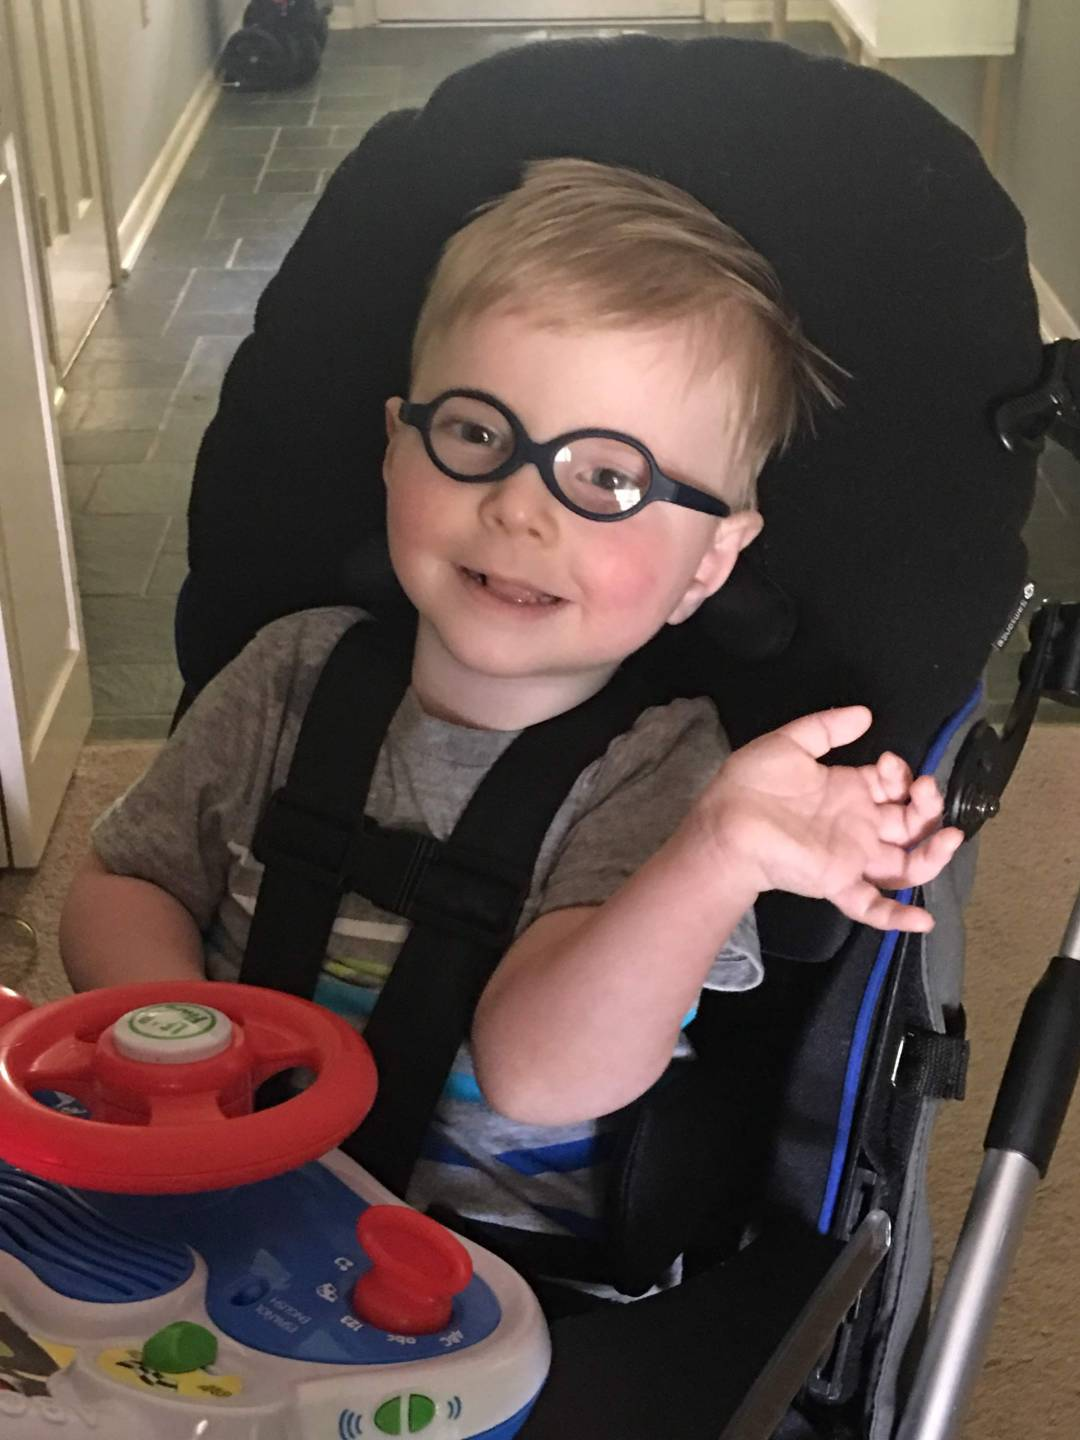 Photo of a toddler with glasses